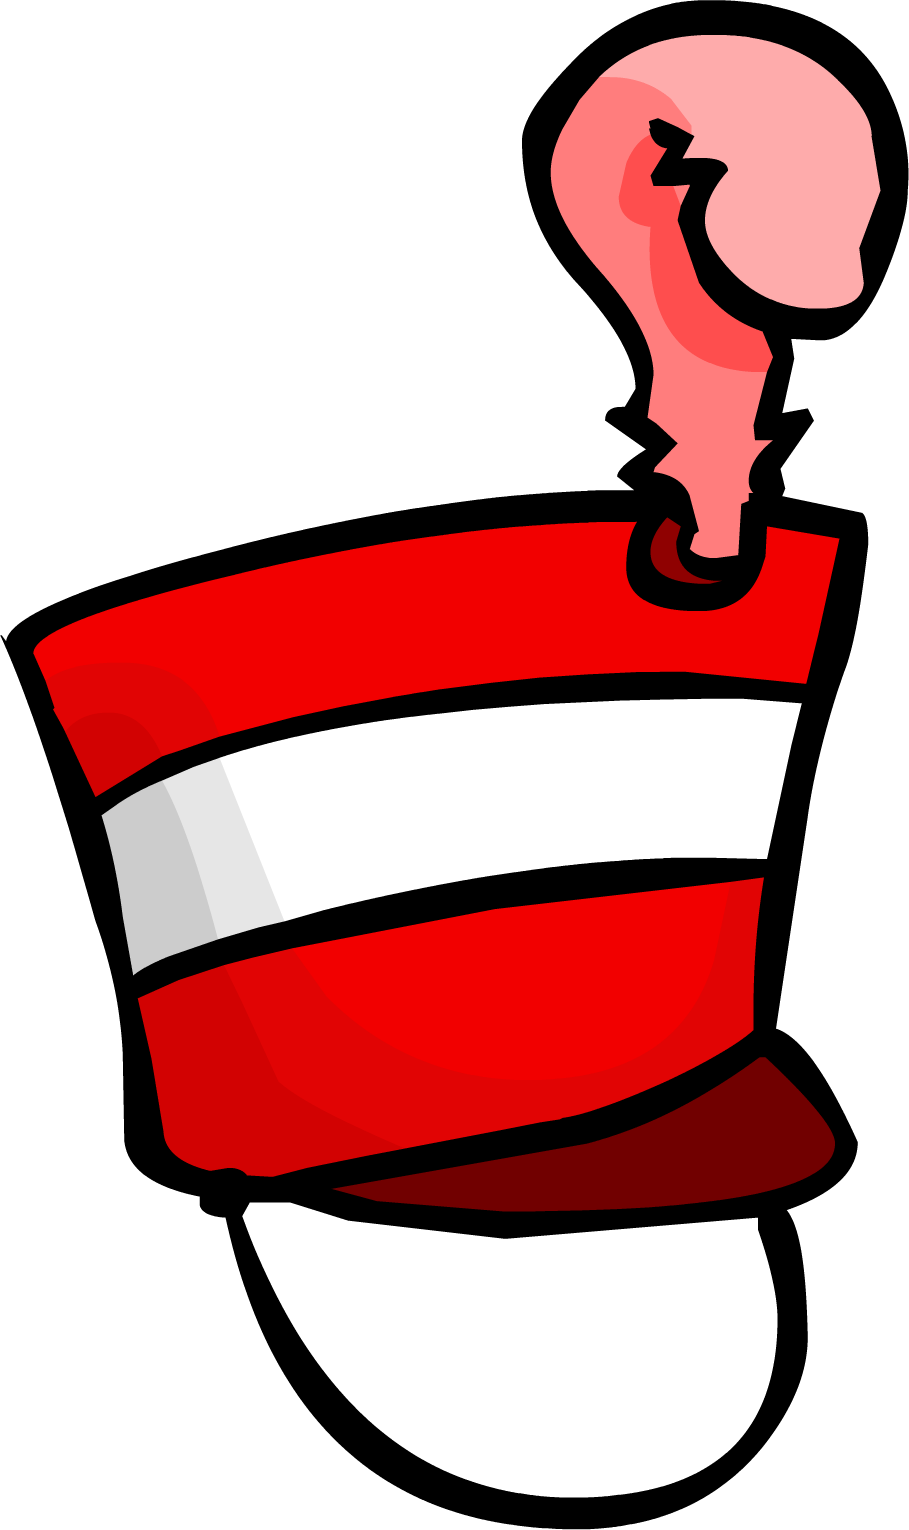 jpg library Marching band hat club. Vector bands banner